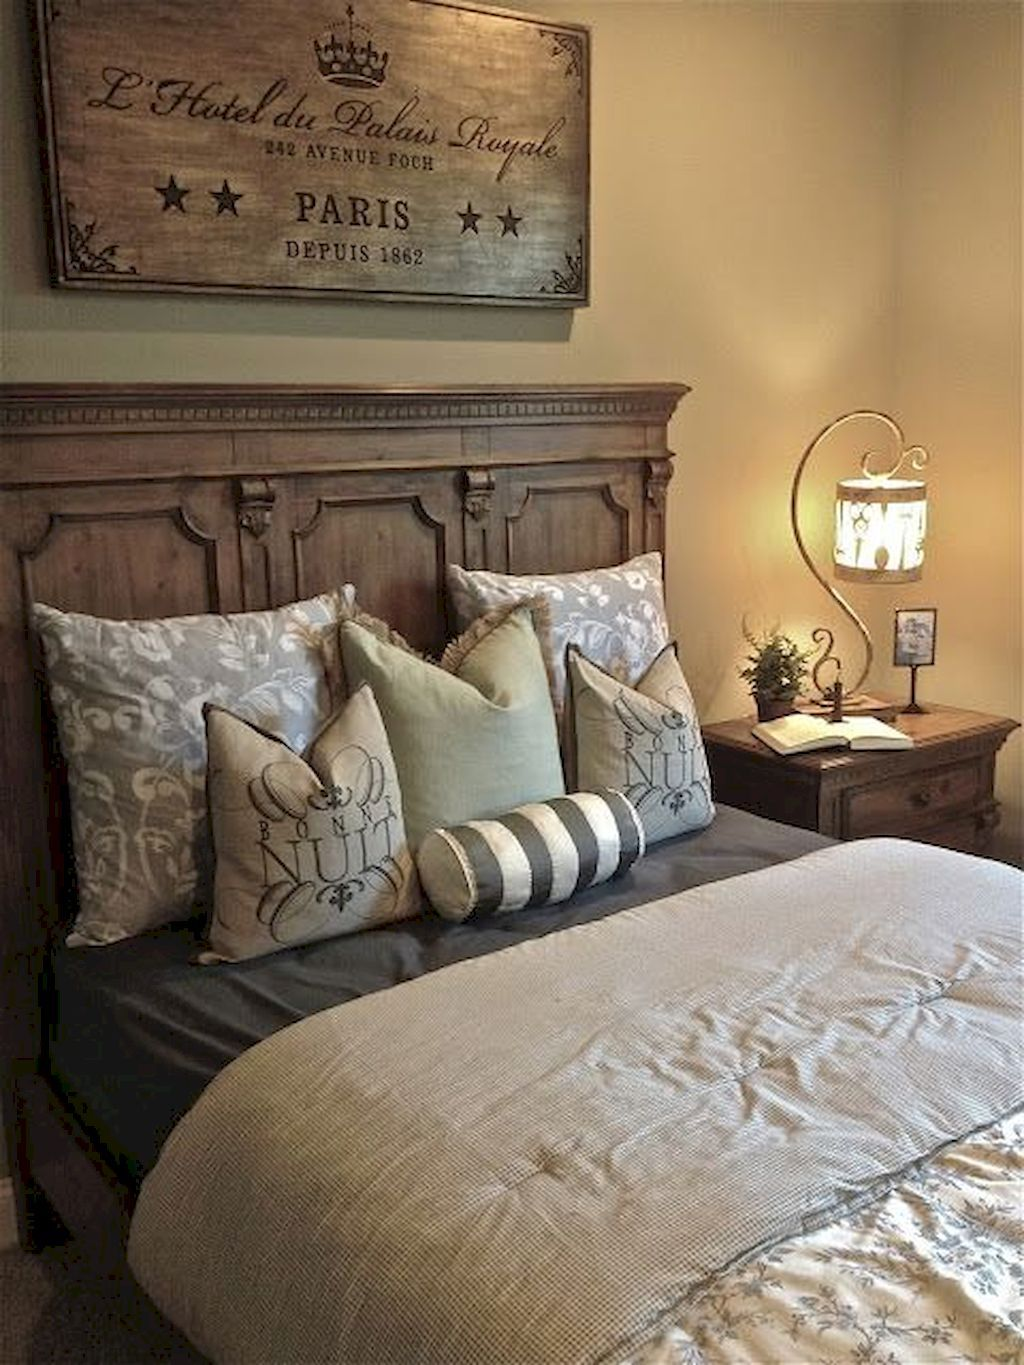 Pin By Kelley Trempler On Modern Farmhouse Decor Country Bedroom Decor French Country Bedrooms French Country Decorating Bedroom